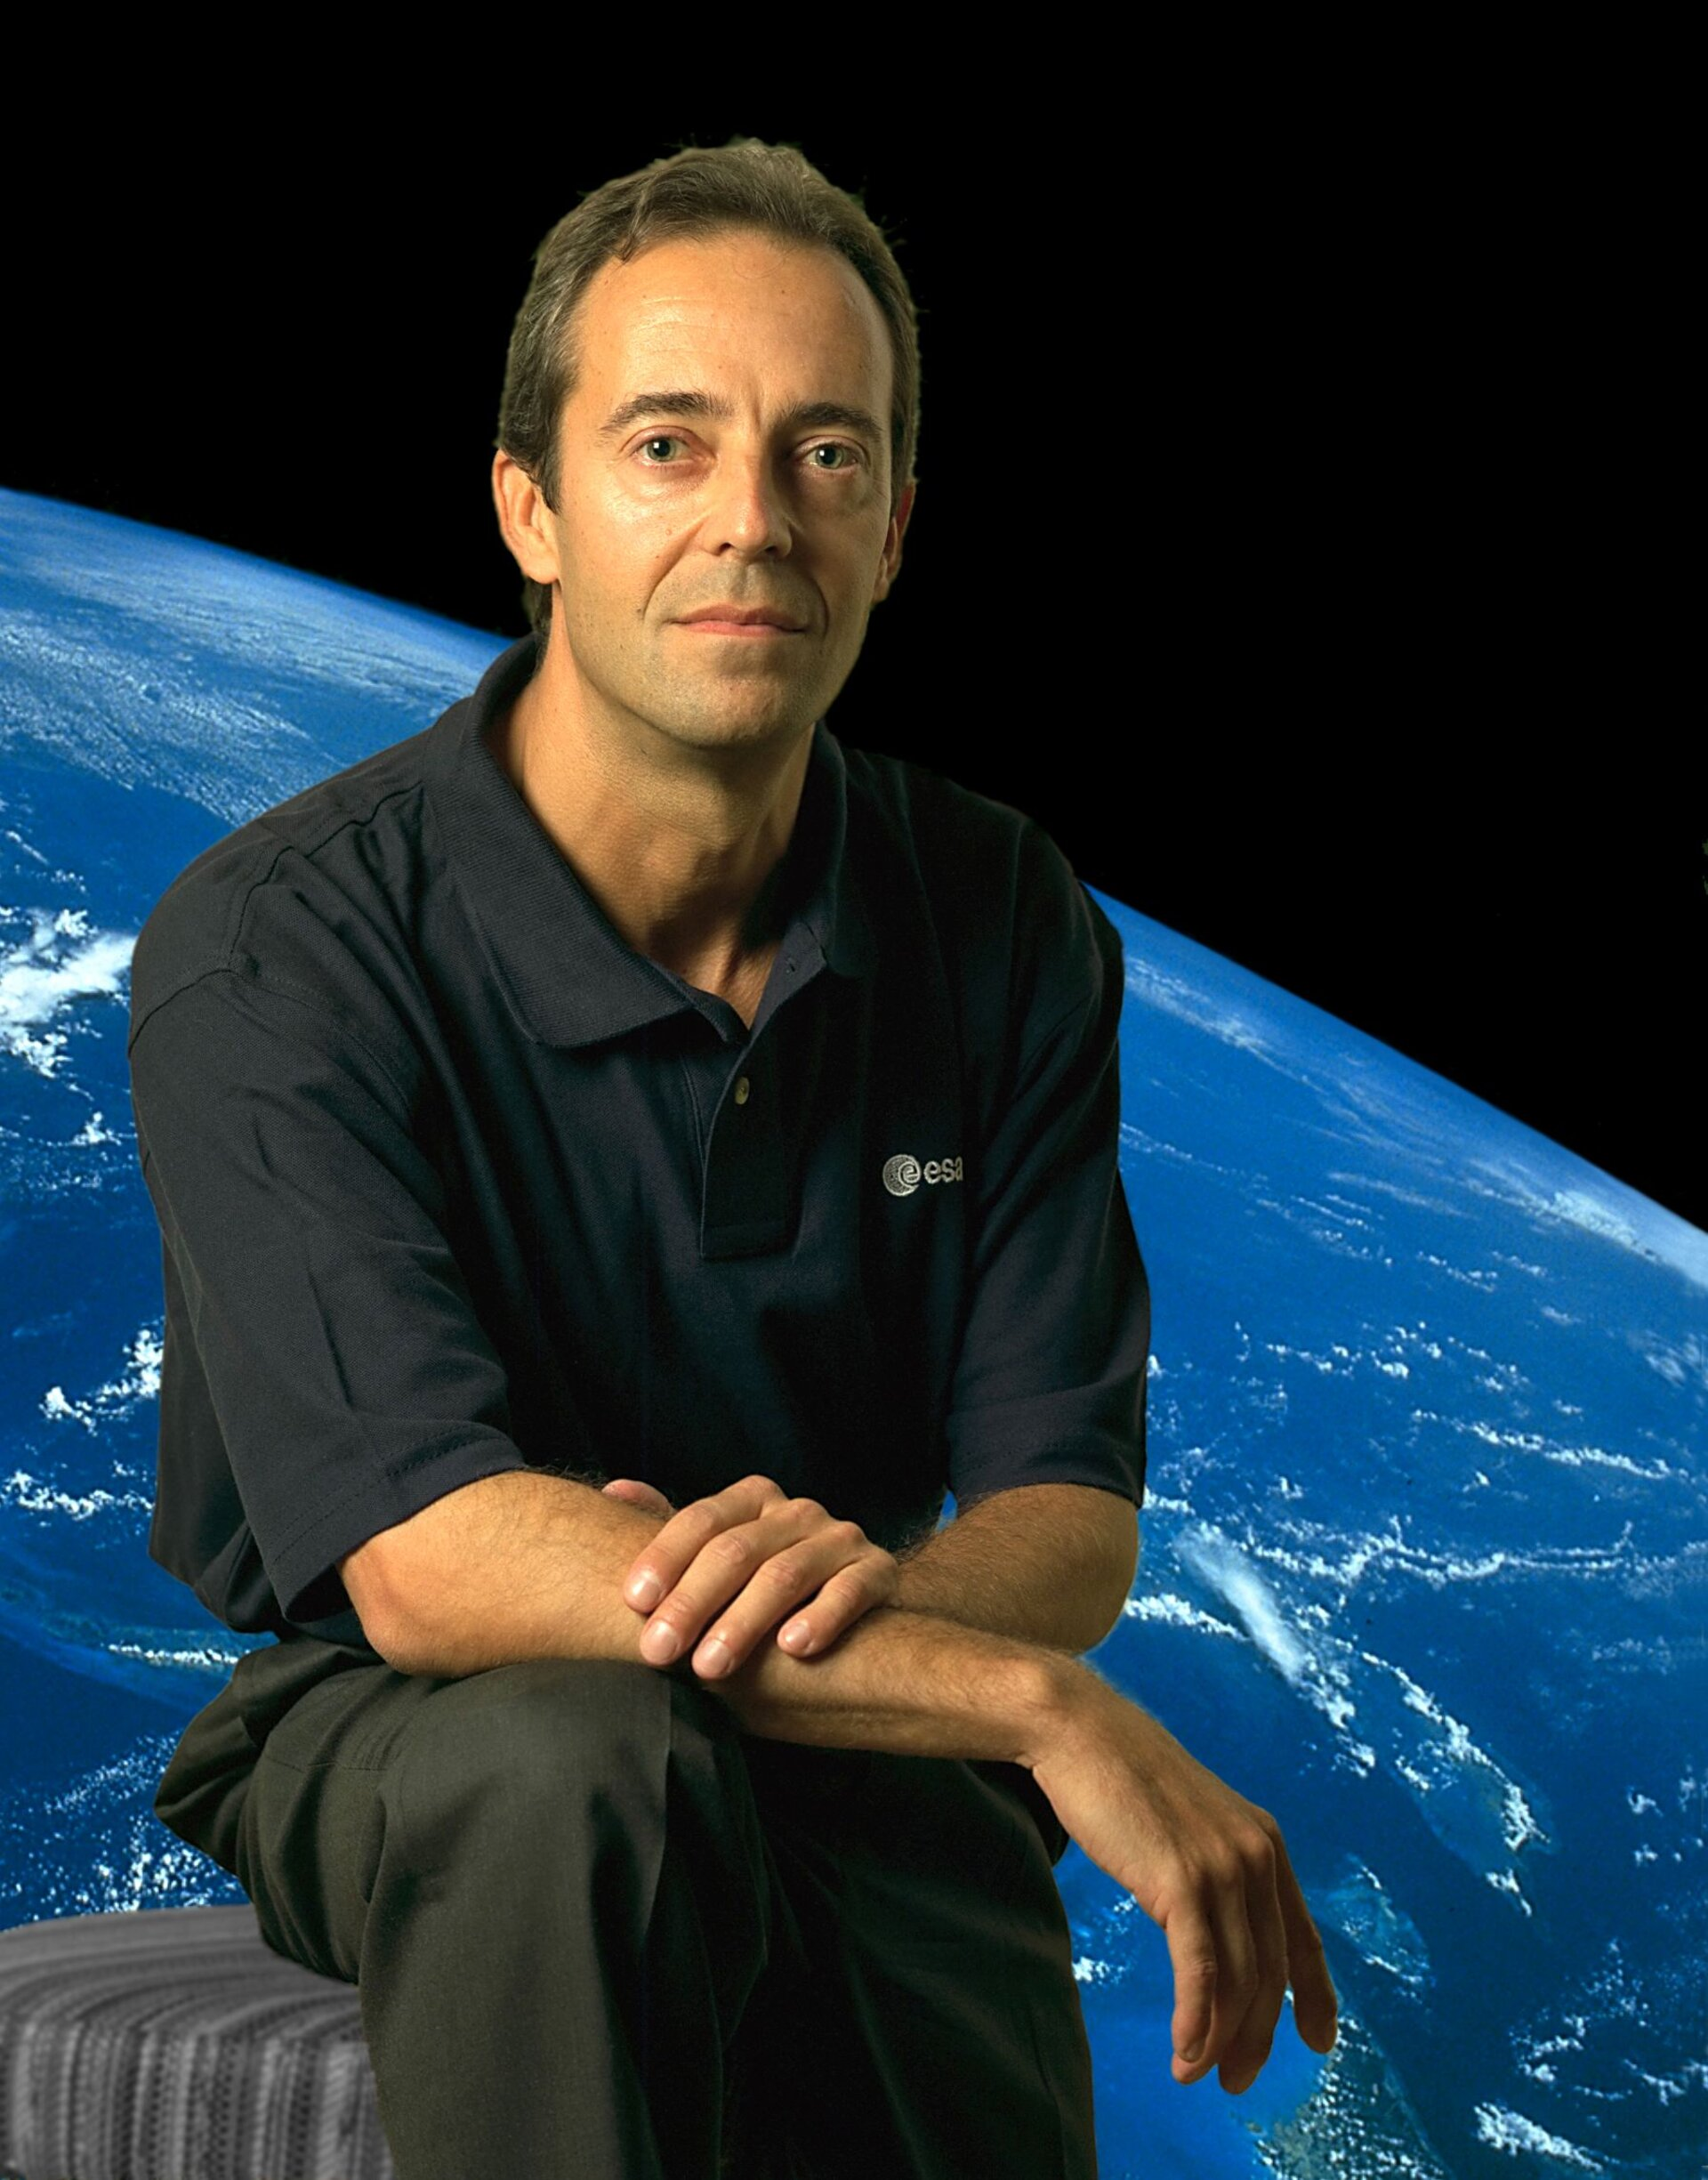 Jean-François Clervoy, astronaut of the European Space Agency (ESA)